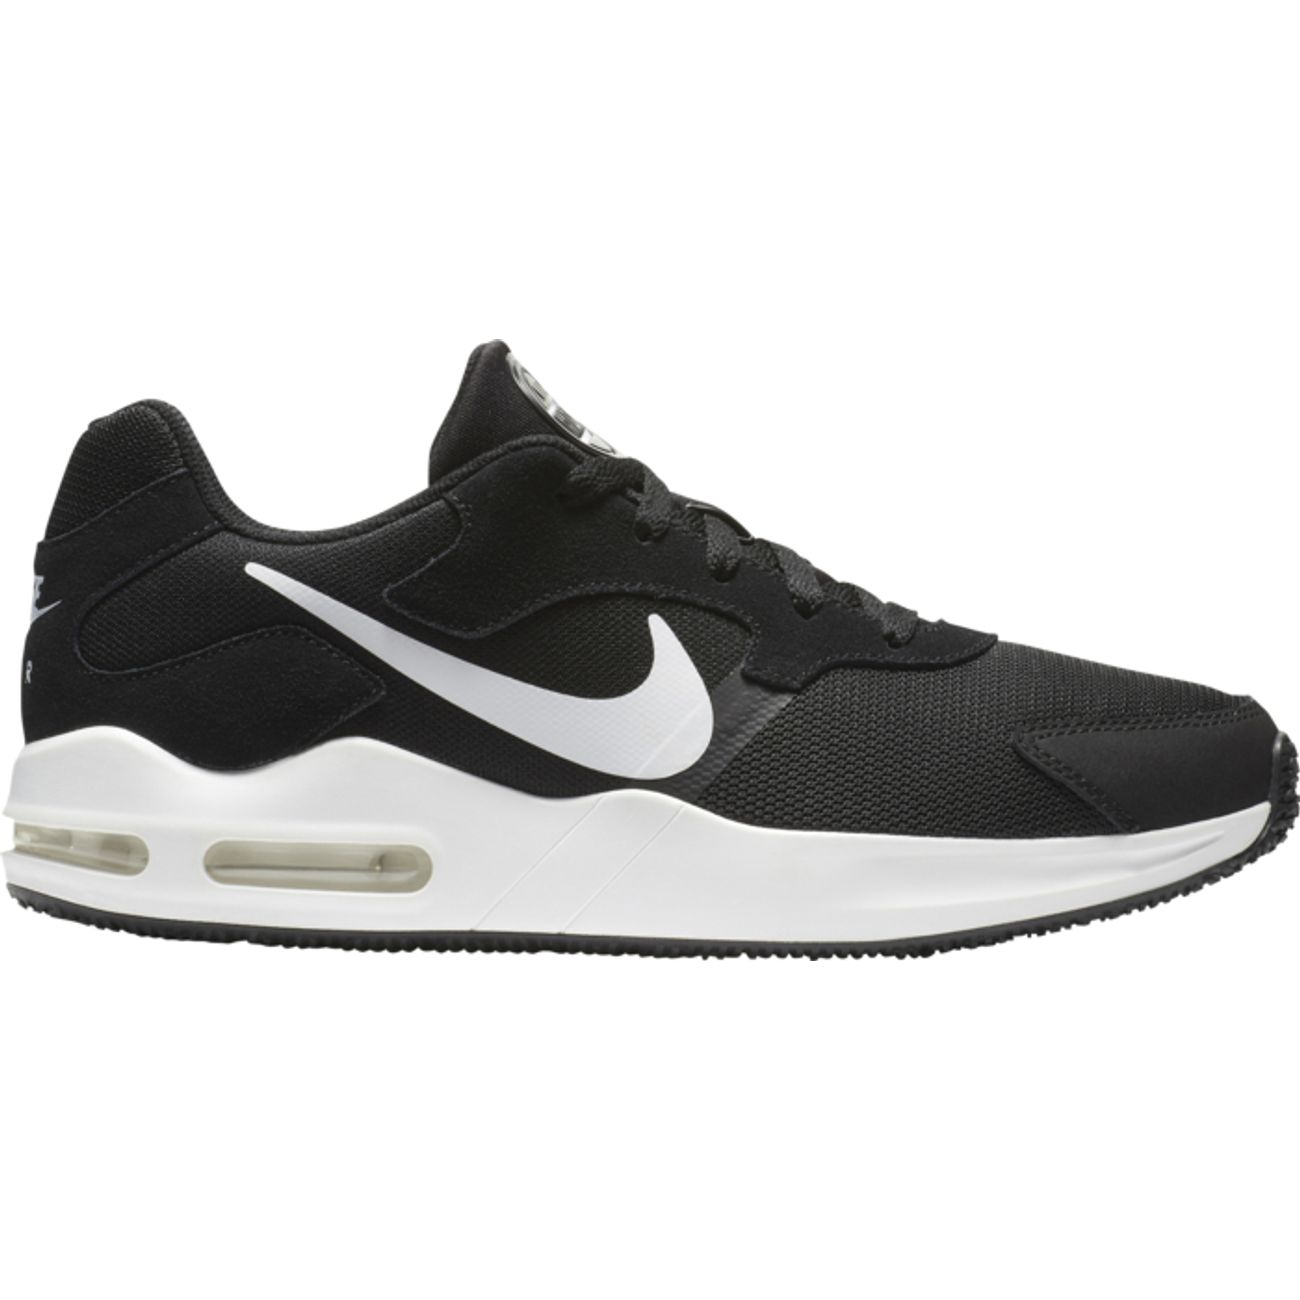 low priced ac7af e935e Chaussures Running Homme Nike Air Max 95 Discount Gris Noir Oran,nike  soldes go sport,nike soldes hiver,magasin pour